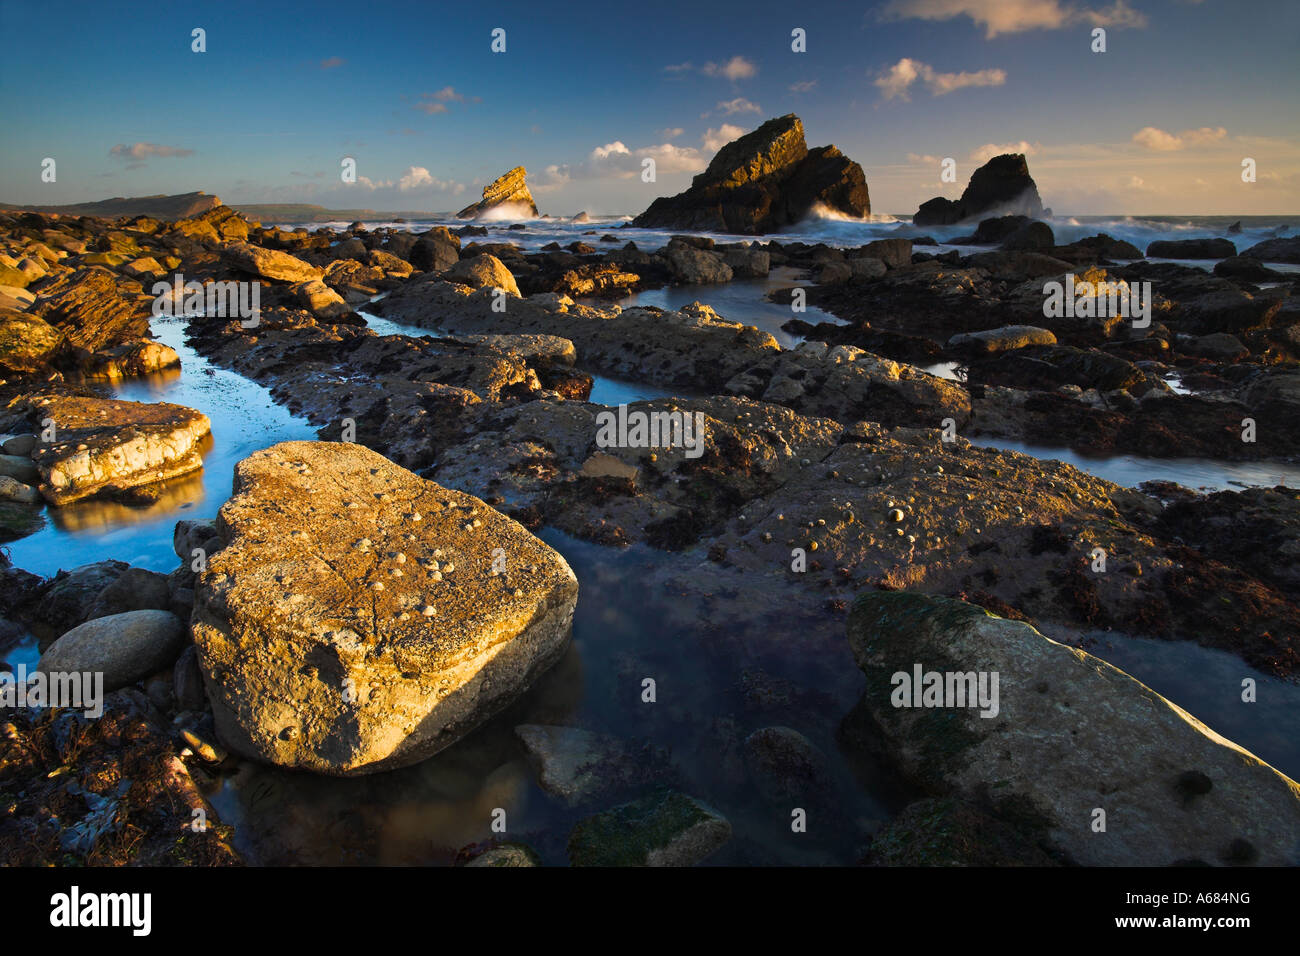 Late afternoon sun illuminates the rocks of Mupe Bay, Dorset - Stock Image